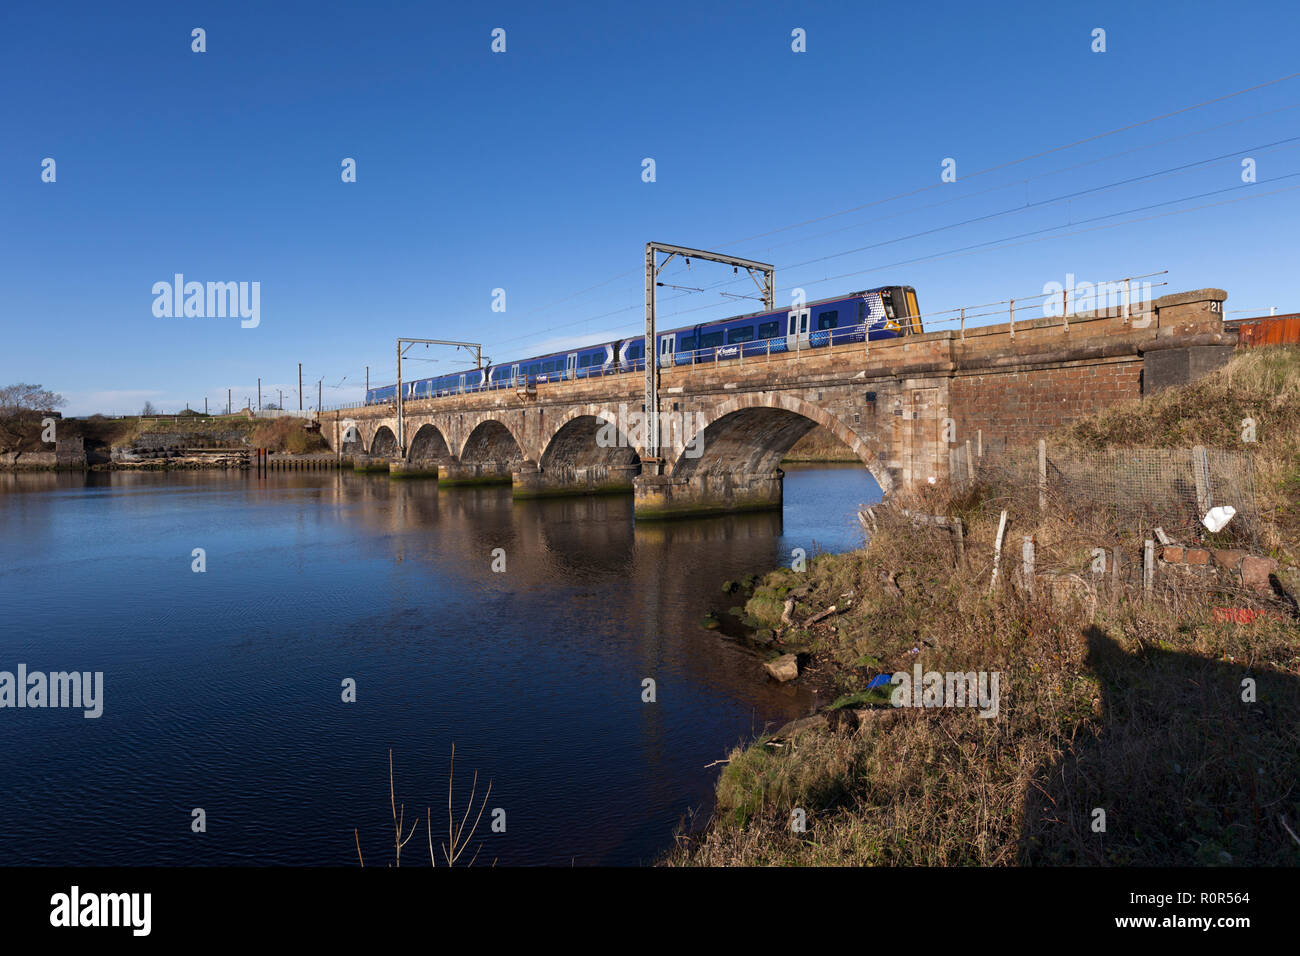 A Scotrail class 380 electric train crossing Queens Viaduct, Irvine Ayrshire, Scotland over the river Irvine on the Ayrshire coast line - Stock Image